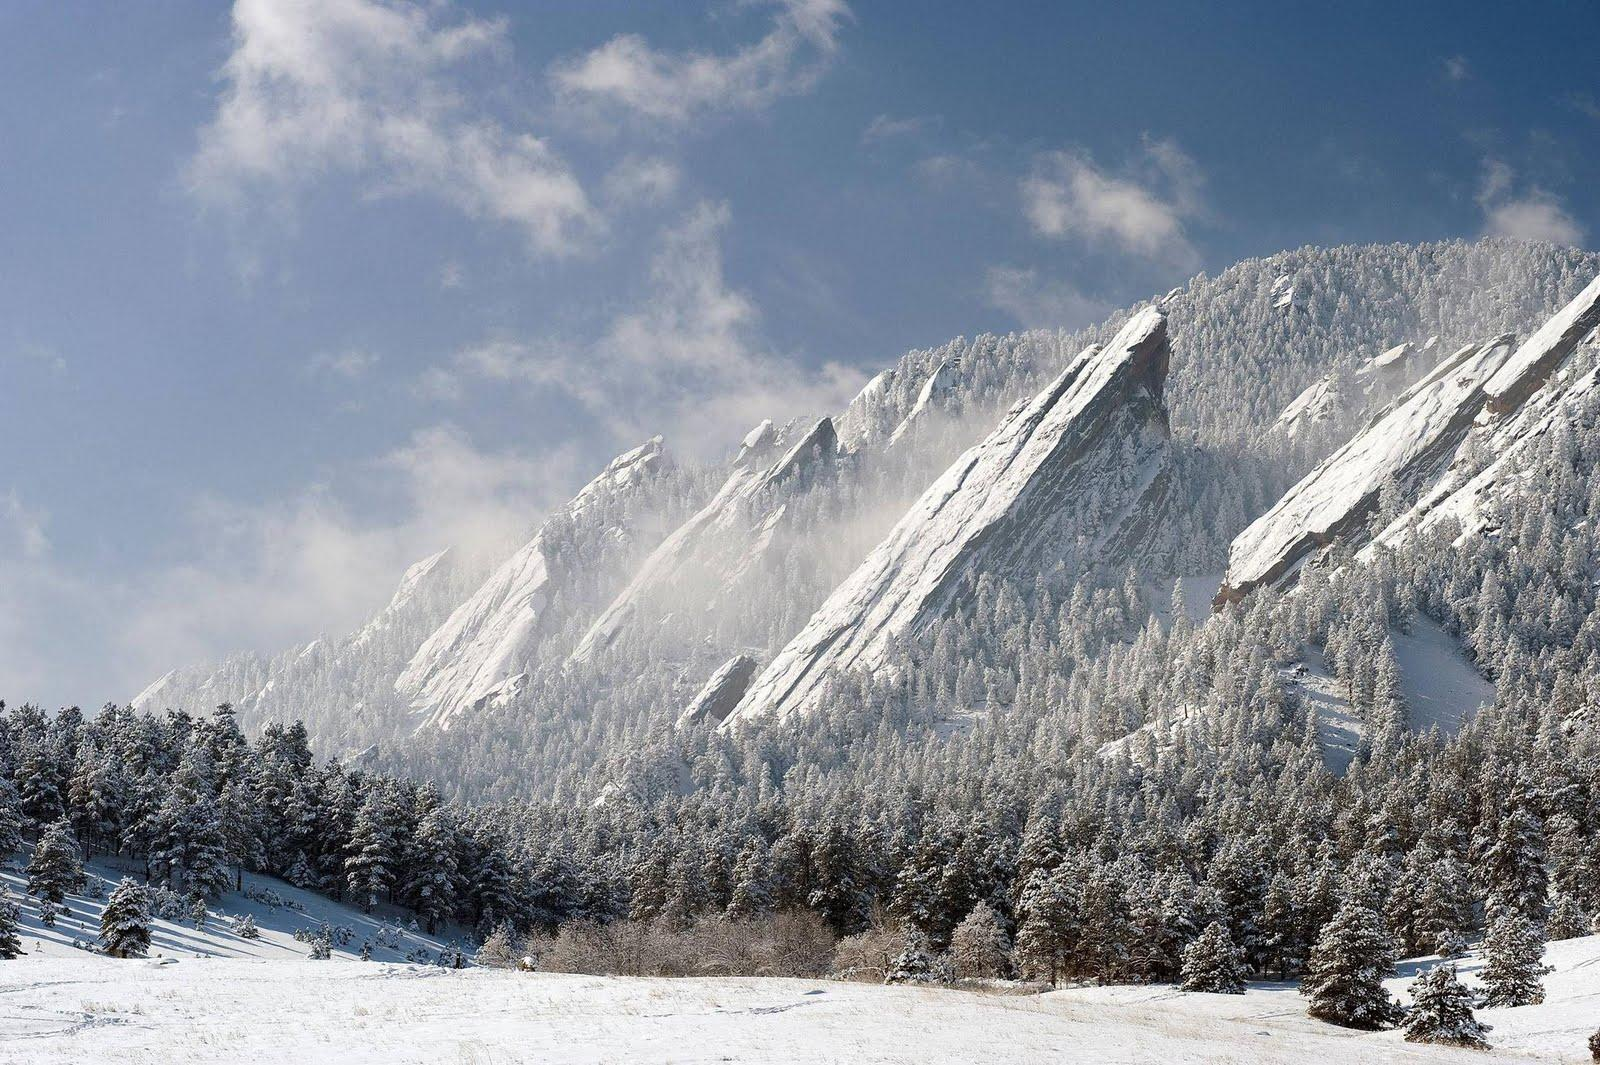 A crisp winter morning at the Flatirons in Boulder, CO